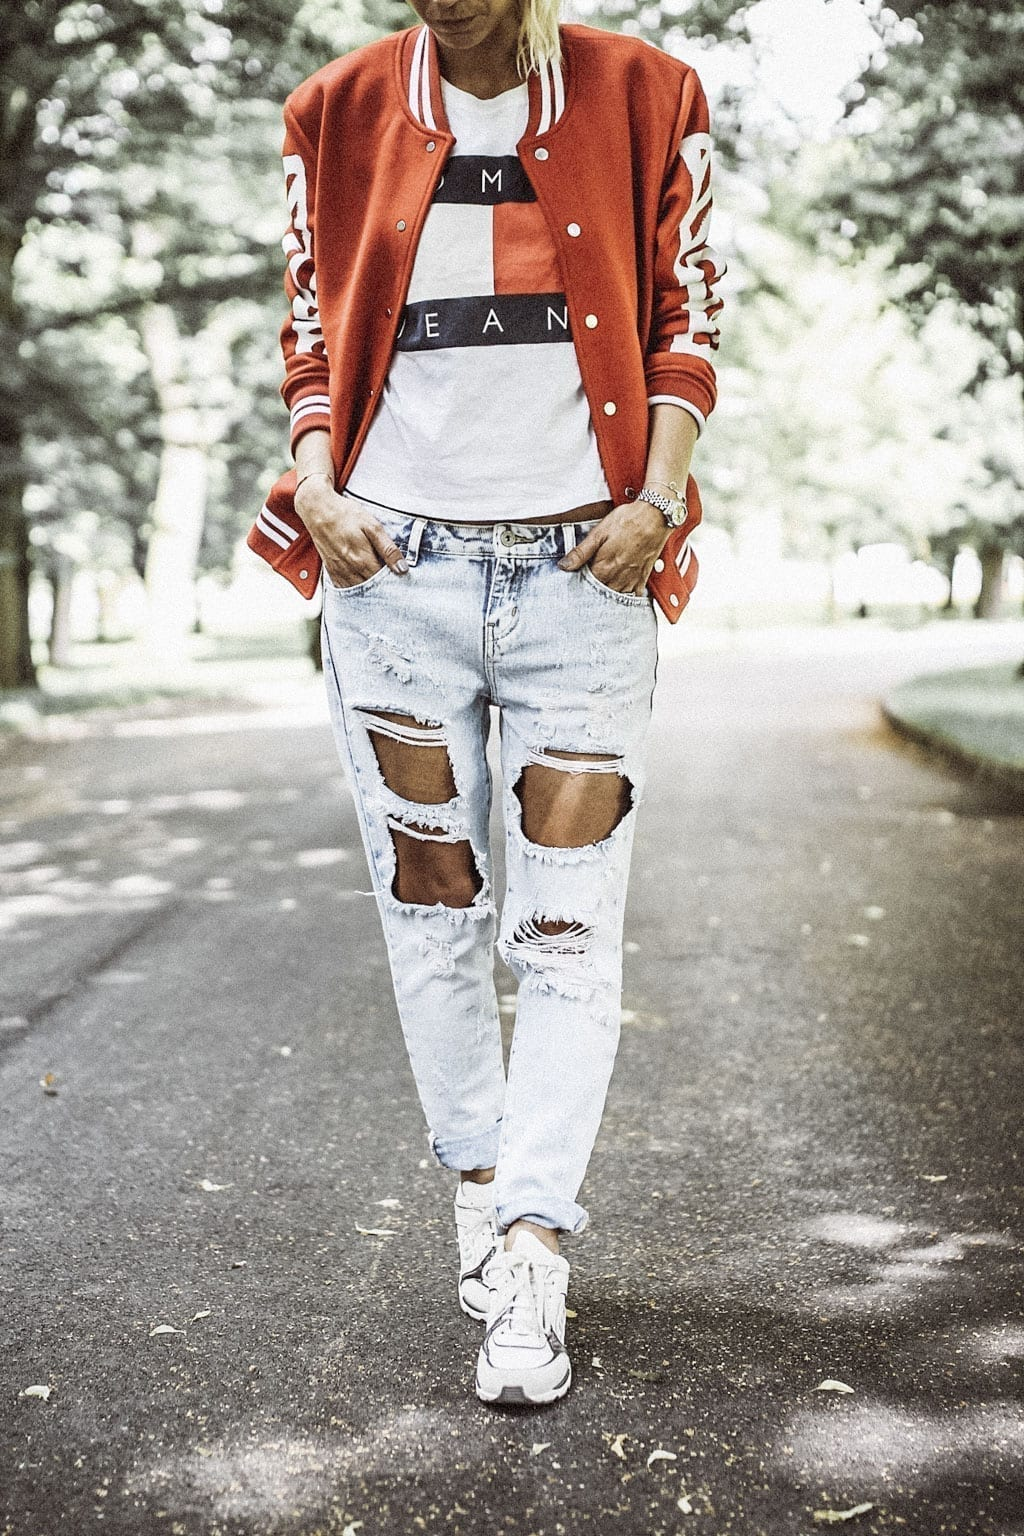 Constantly-K-karin-kaswurm-white-red-rieger-jacket-salzburg-fashion-street-style-9053